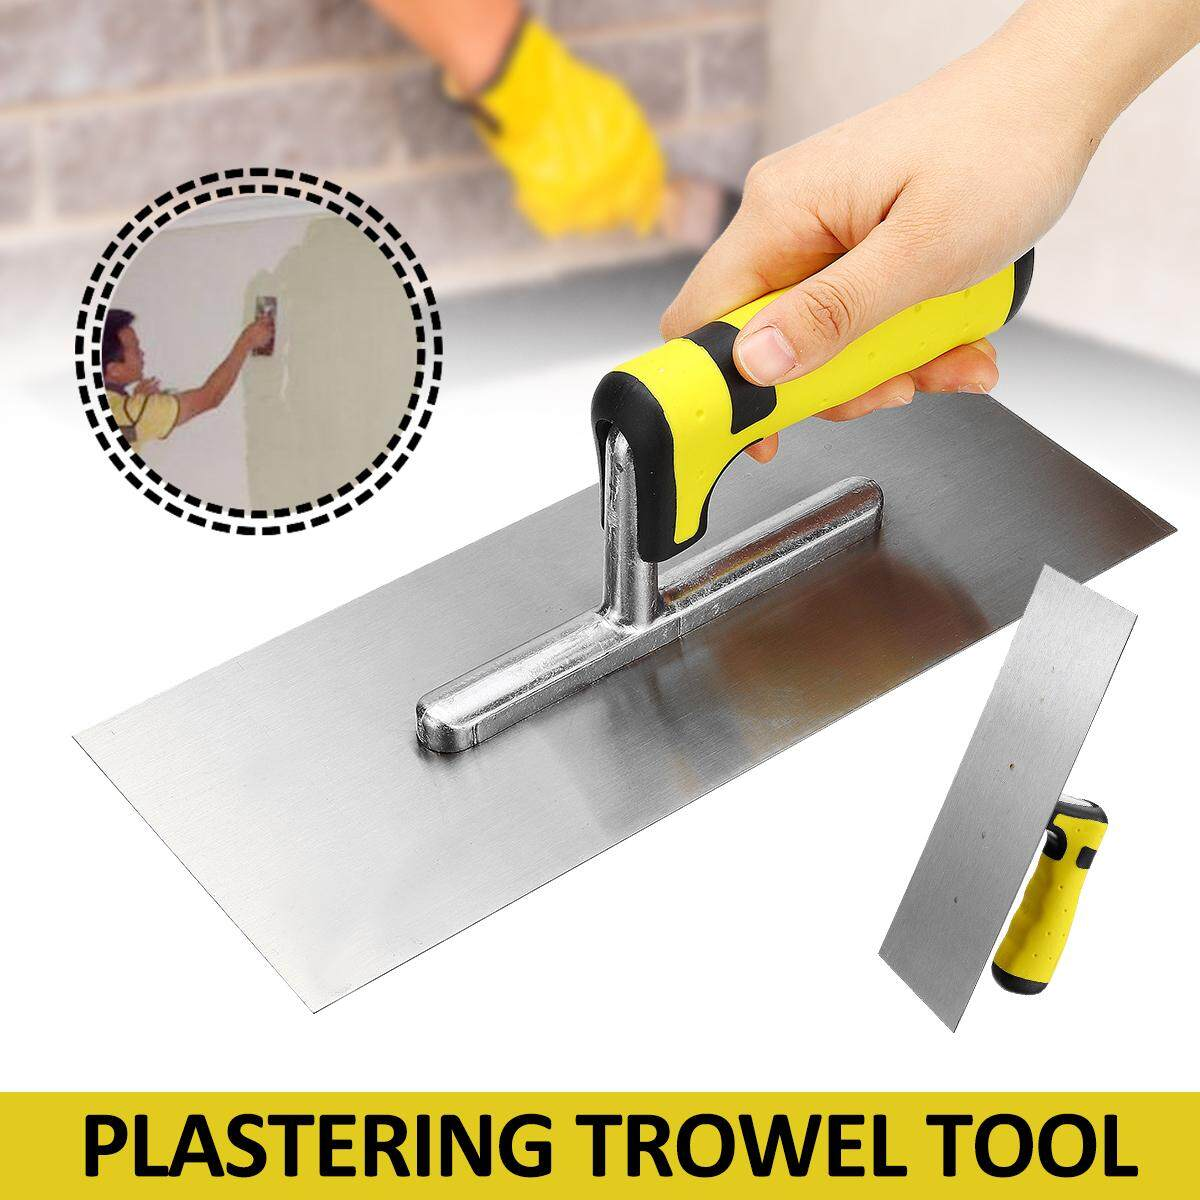 11 Inch Professional Stainless Steel Plasterers Plastering Finishing Trowel